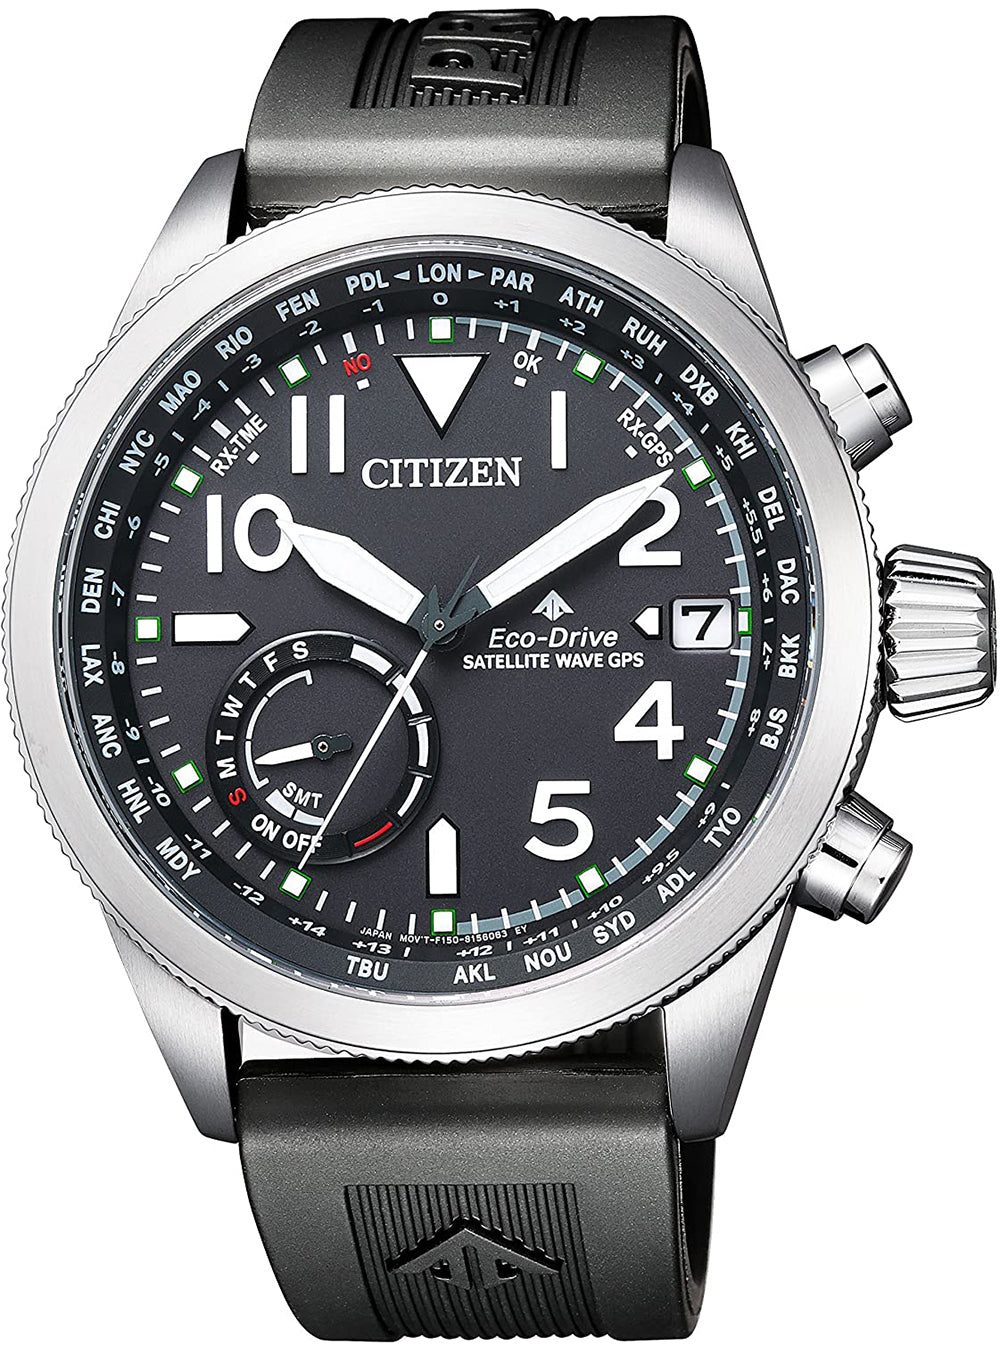 CITIZEN PROMASTER GPS SATELLITE WAVE CC-3060-10E JAPAN MOV'T JDM